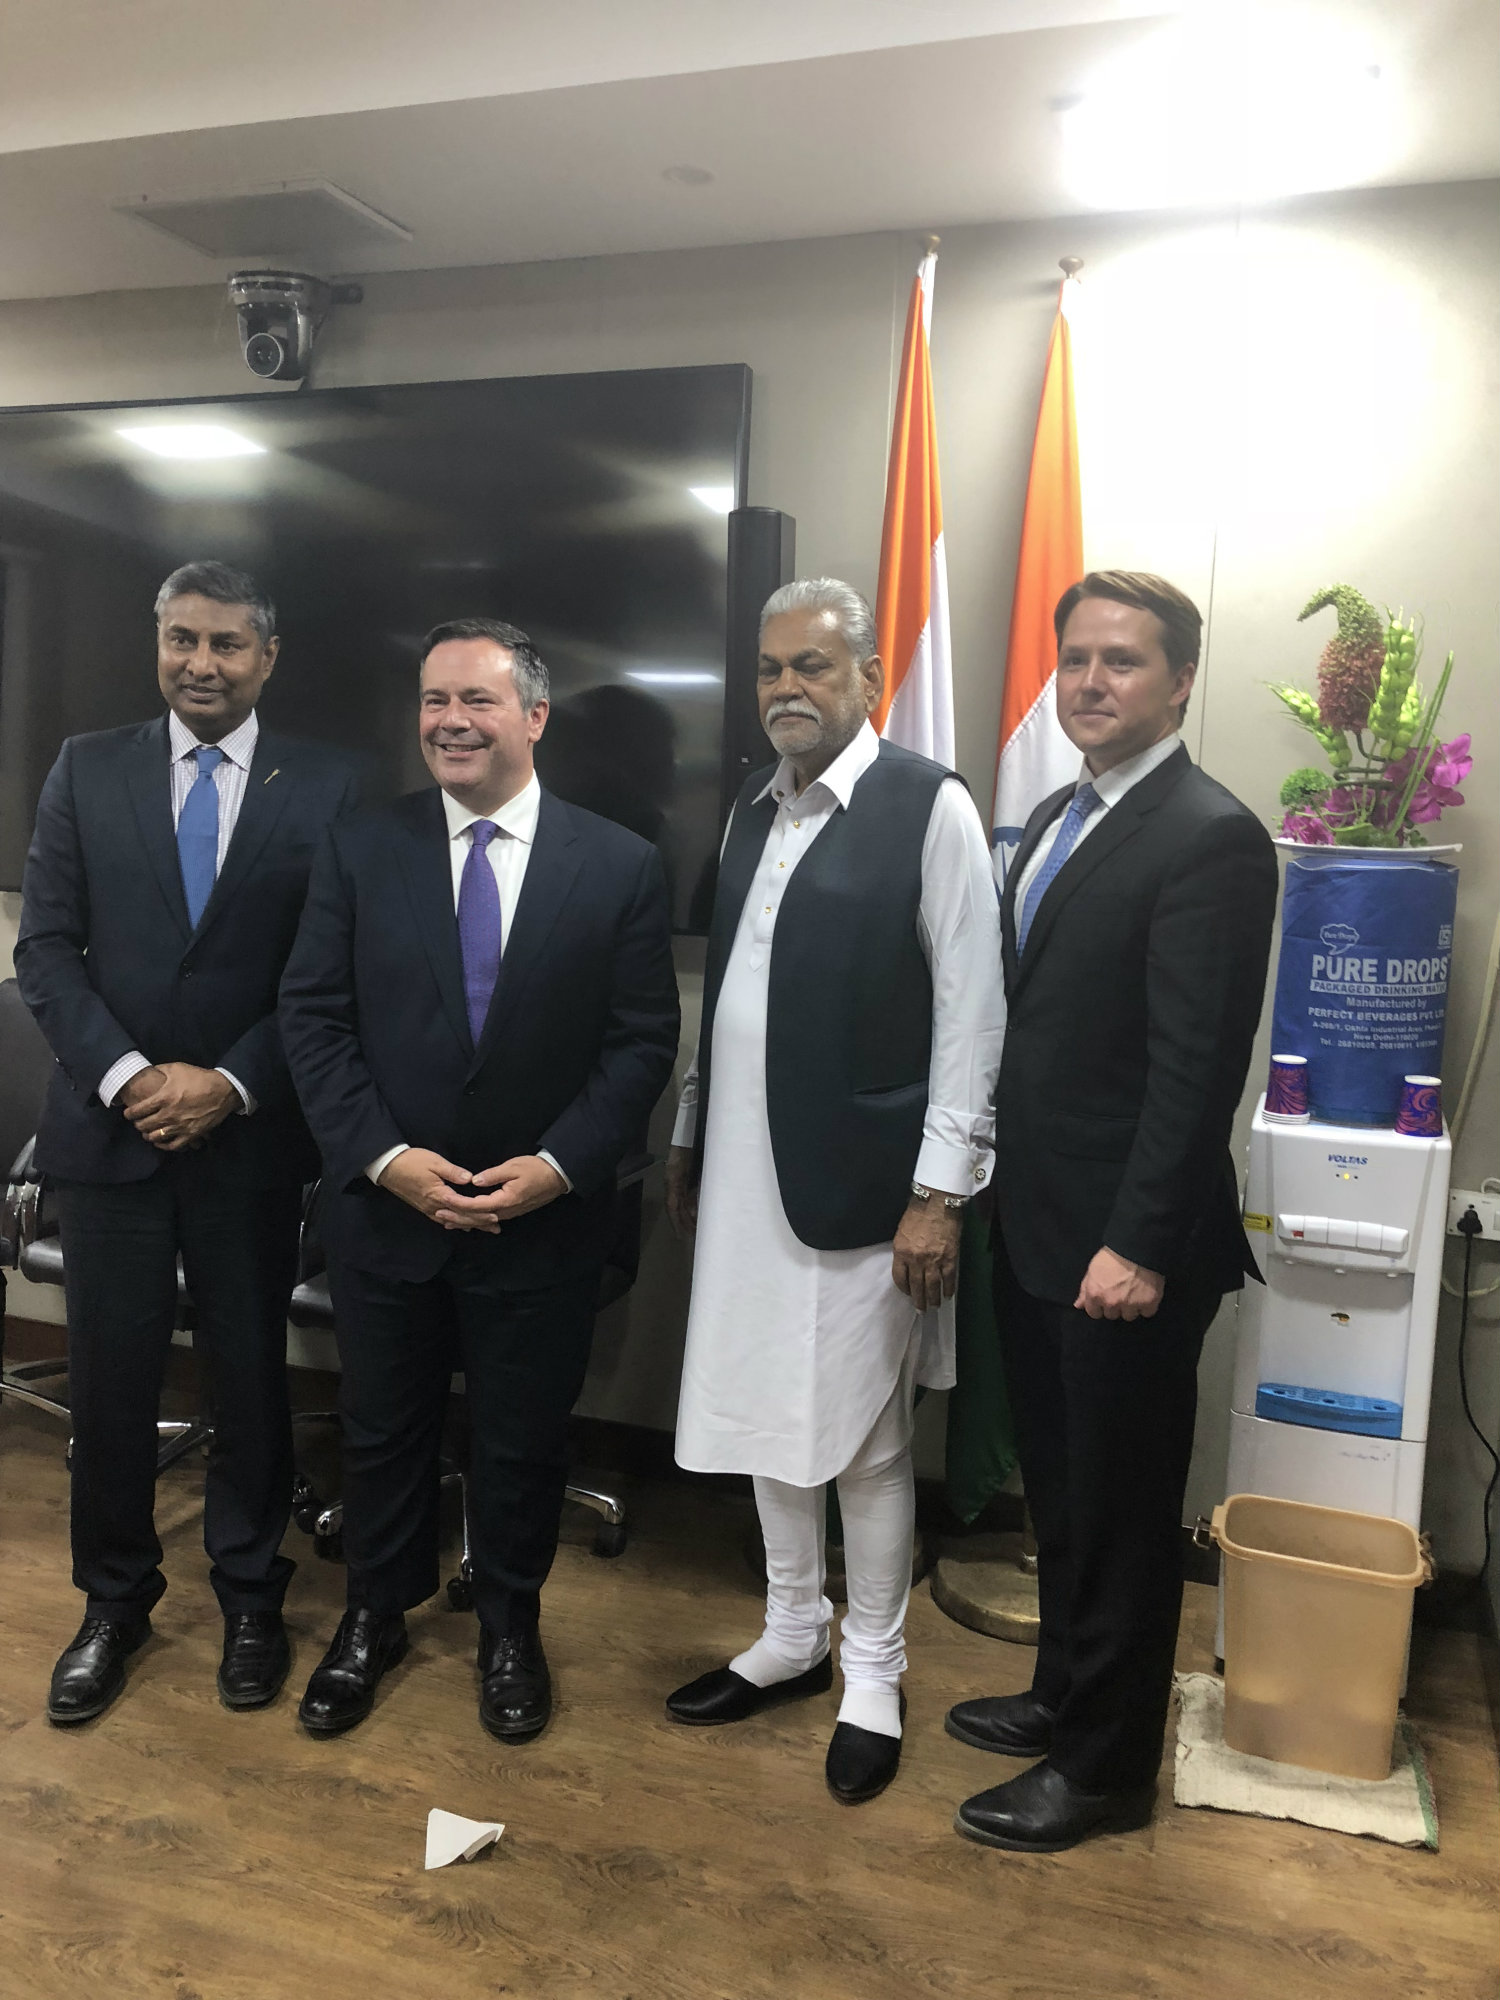 https://d3n8a8pro7vhmx.cloudfront.net/prasadpanda/pages/13/features/original/Me__UCP_Leader_Jason_Kenney__India's_Minister_of_State_for_Agriculture__Shri_Parshottam_Rupala_and_MLA_Devin_Dreeshen.JPG?1545340022